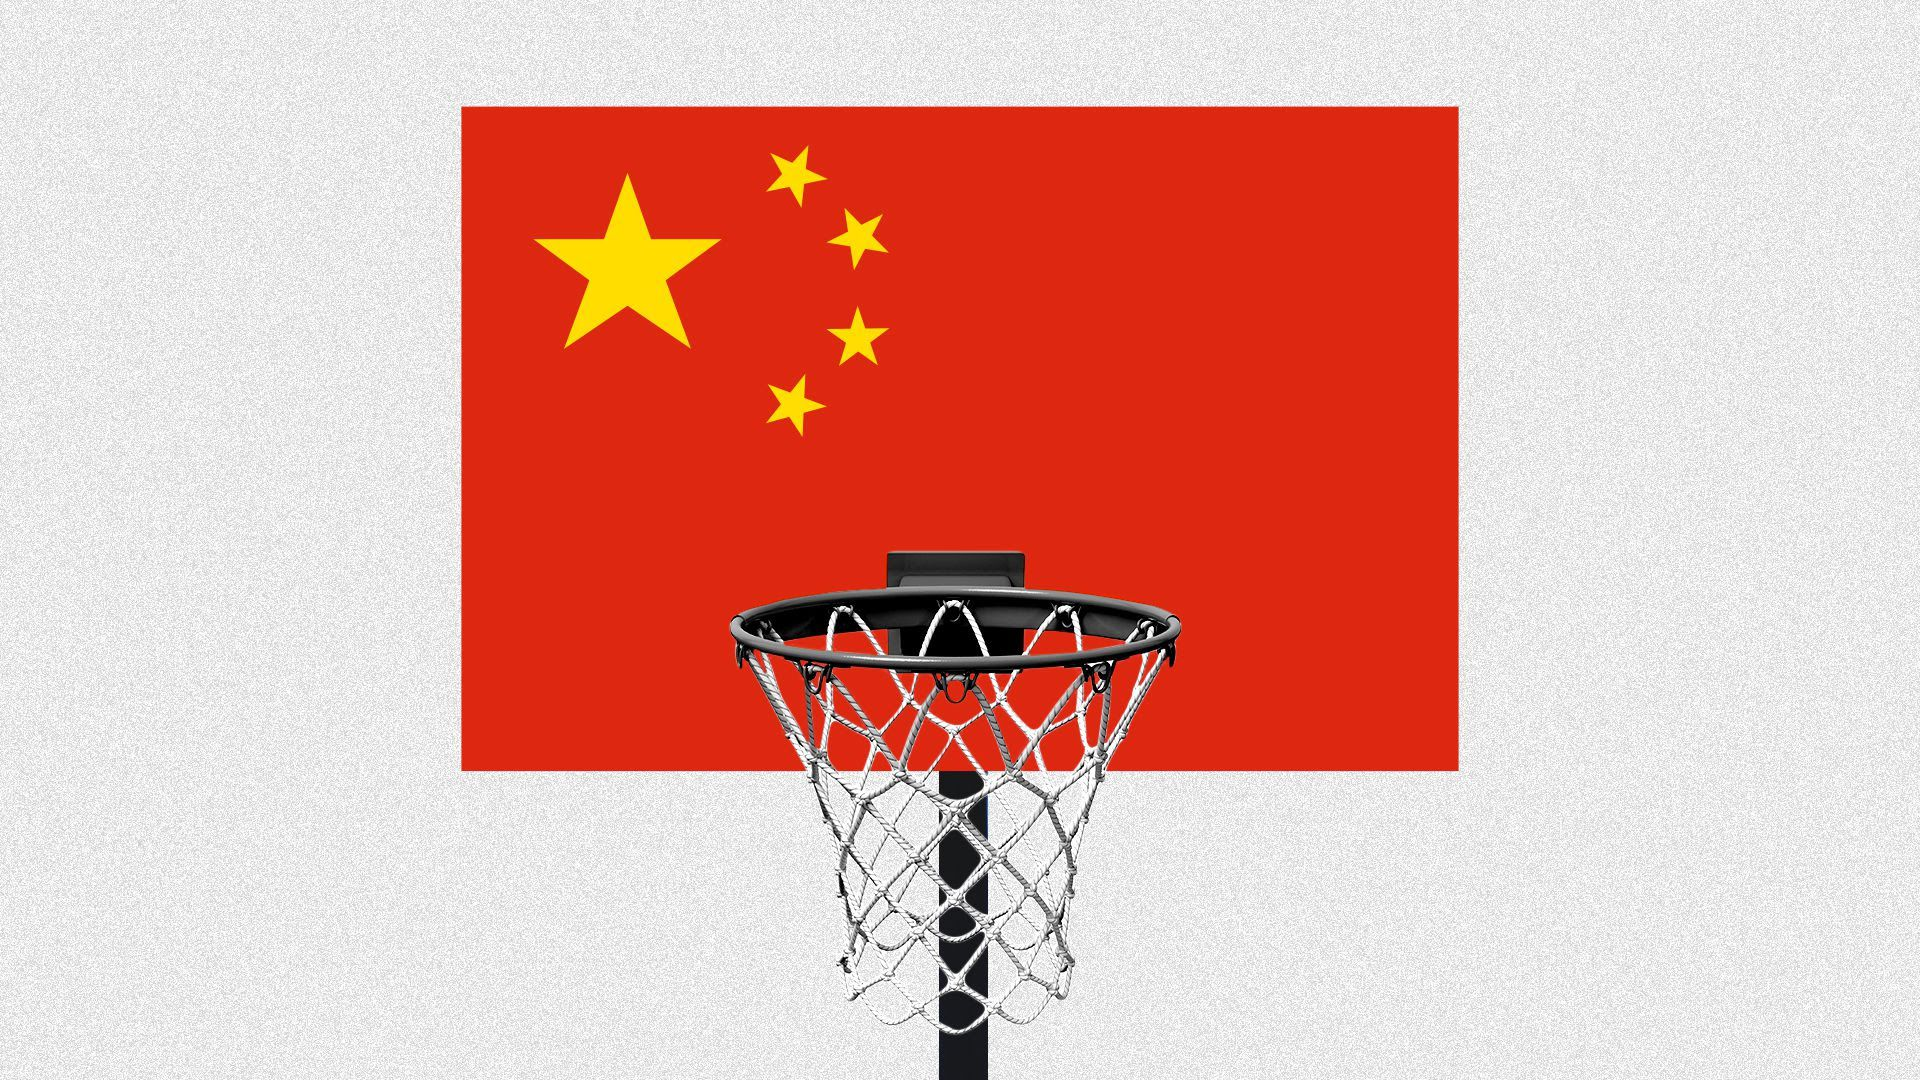 Illustration of a basketball hoop with the Chinese flag